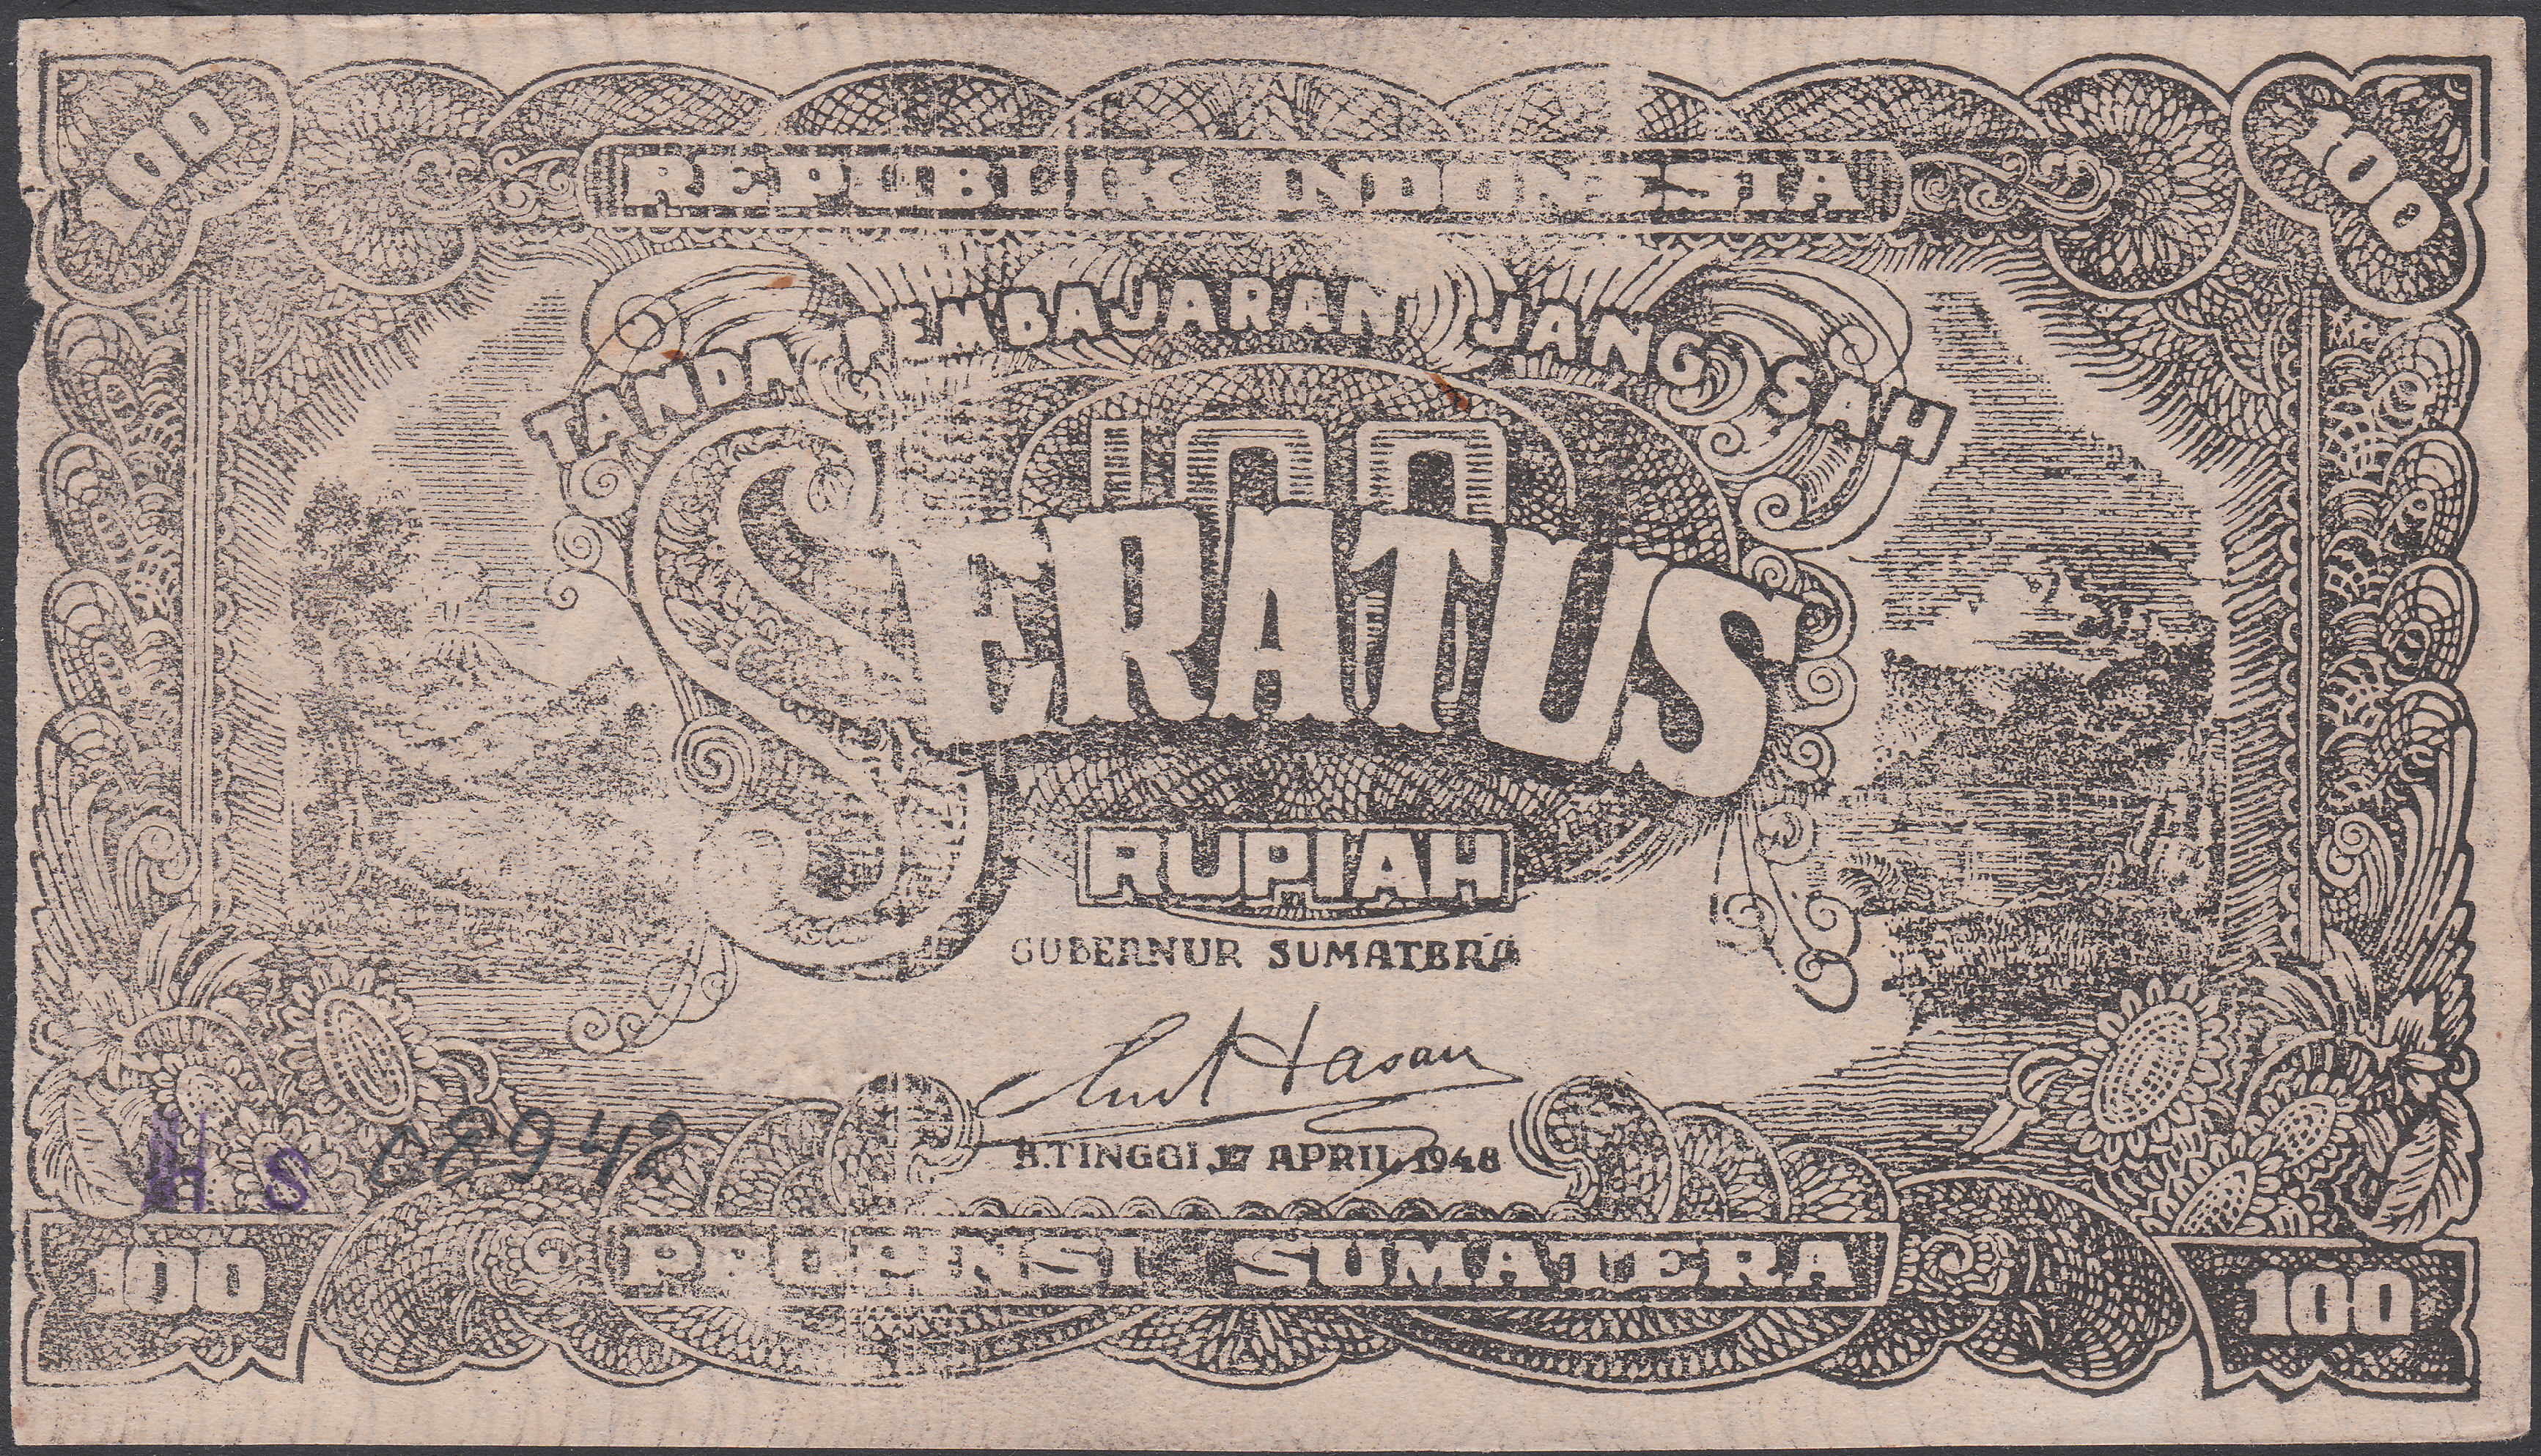 Secrets of Bukittinggi's paper money serial numbers